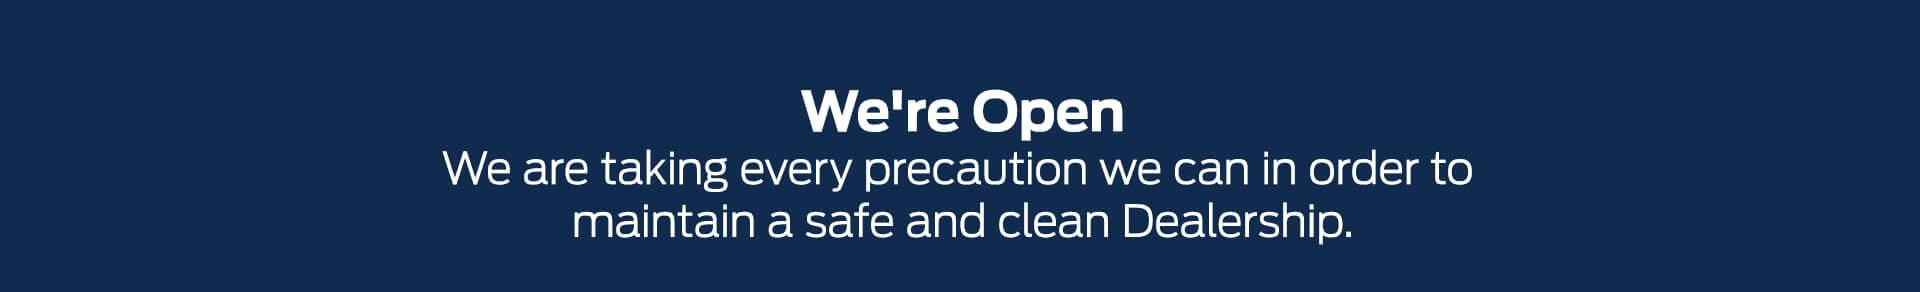 We're Open. We are taking every precaution we can in order to maintain a safe and clean Dealership.